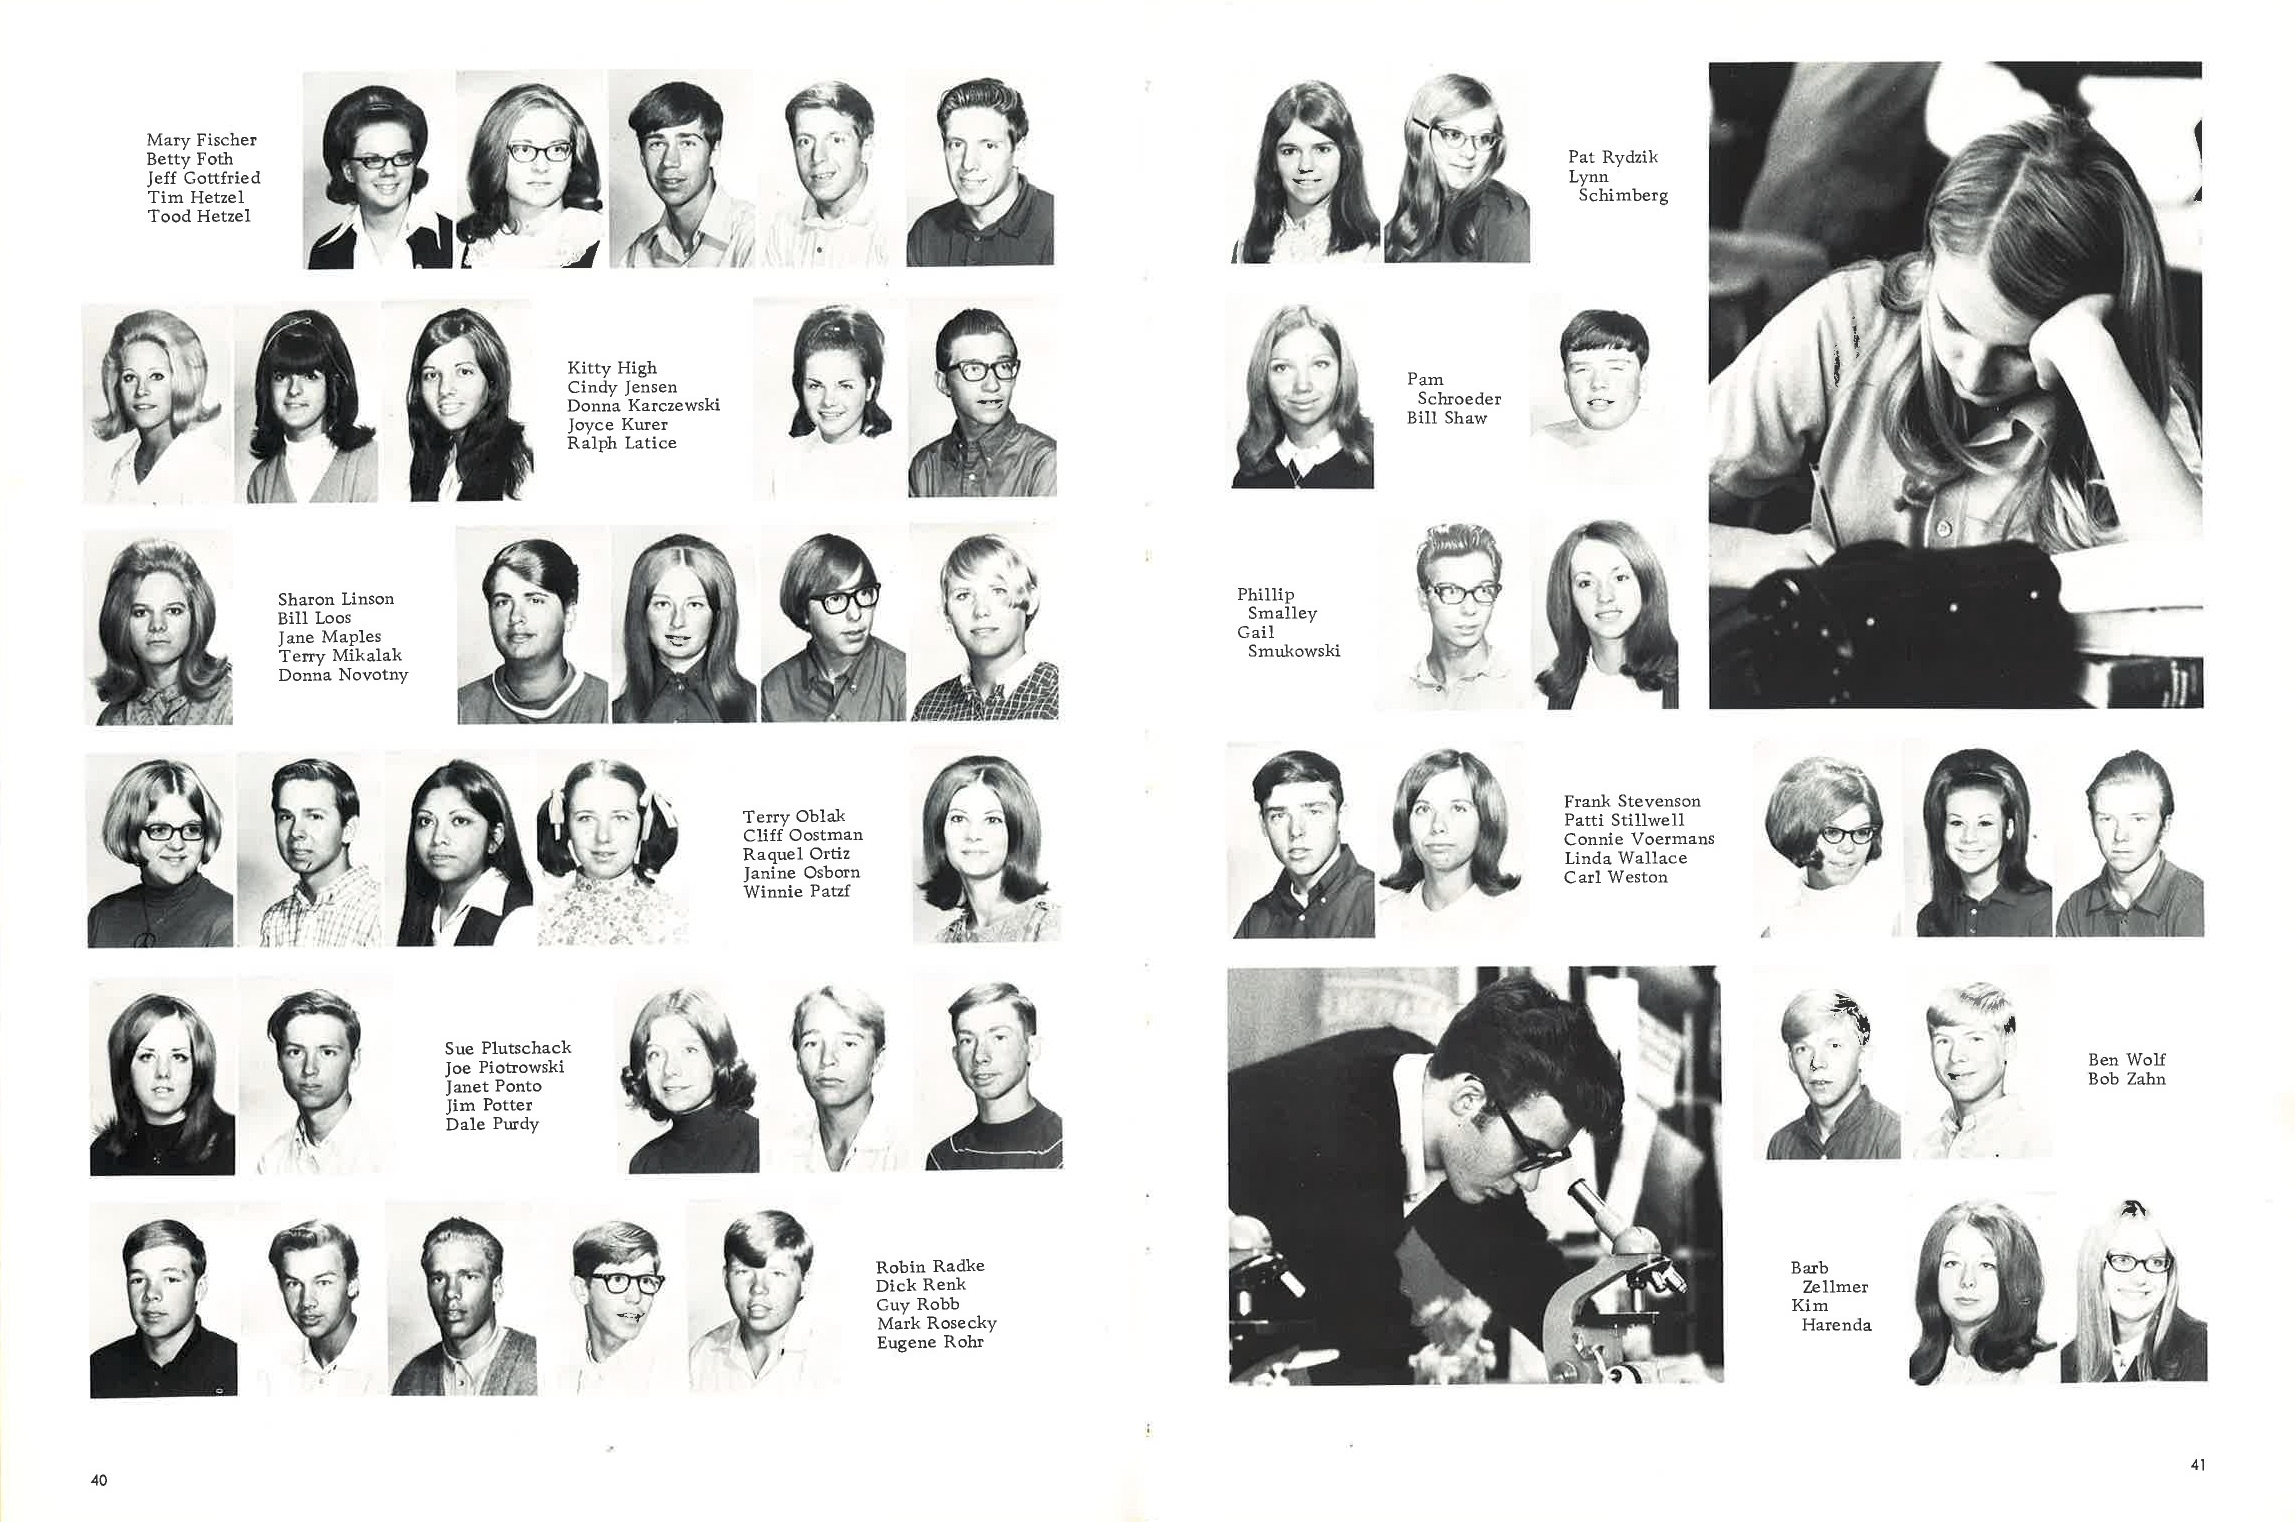 1970_Yearbook_40-41.jpg